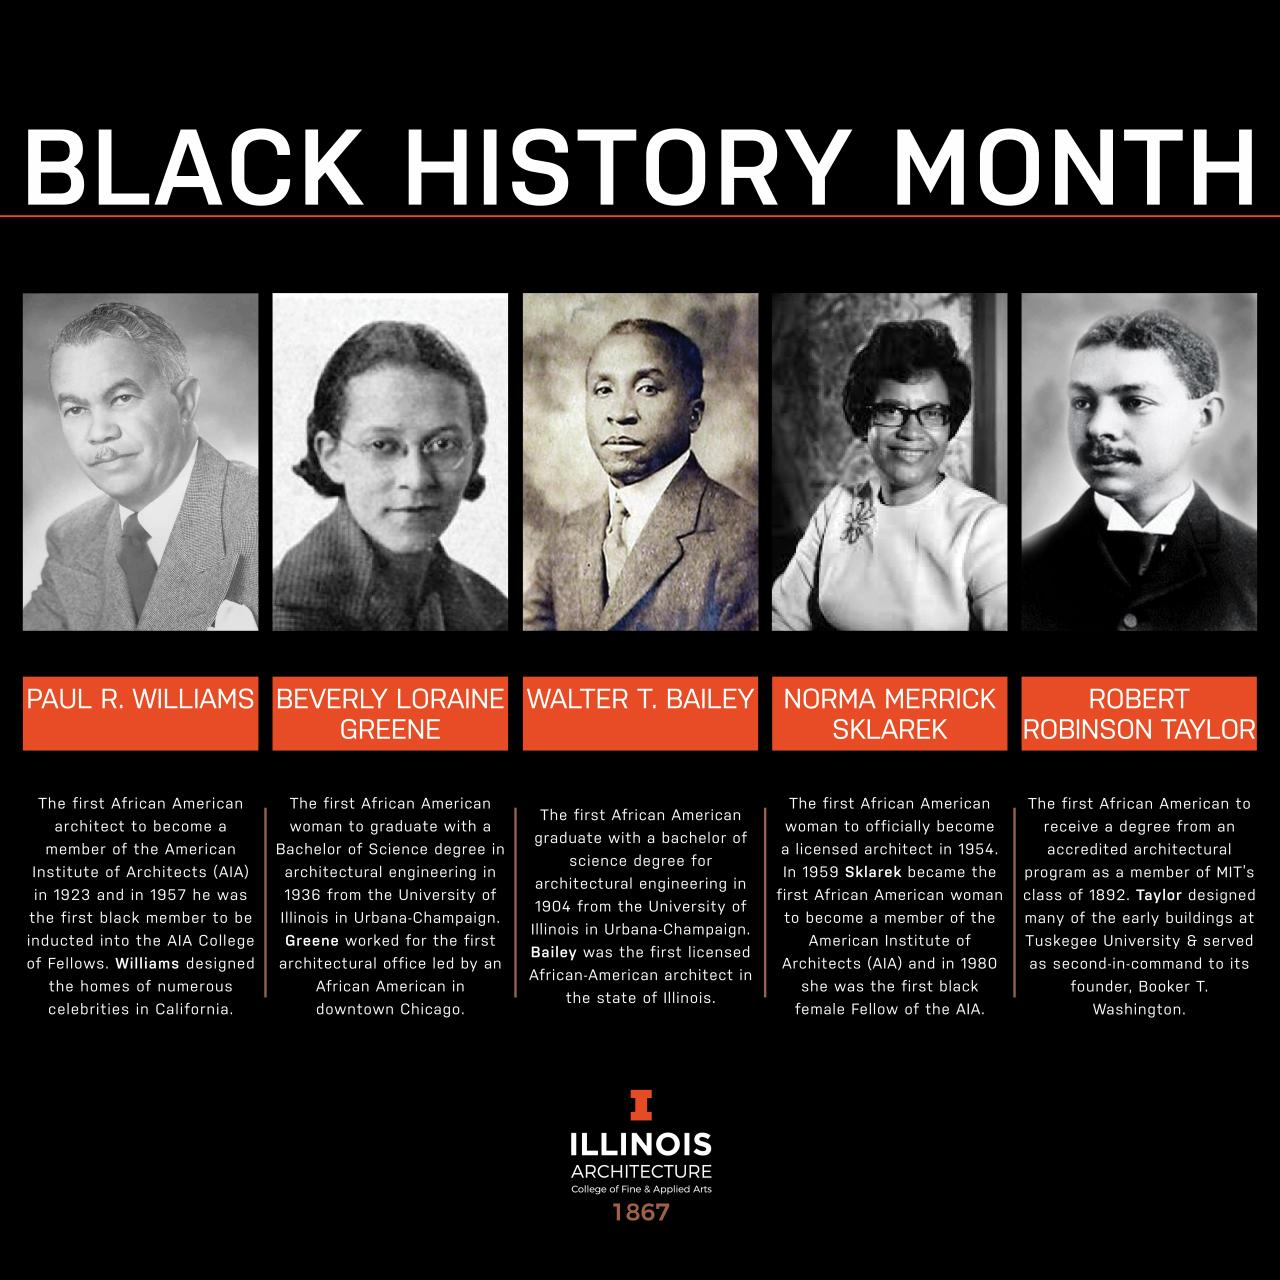 graphic celebrating black history month, with five black architects and their biographies